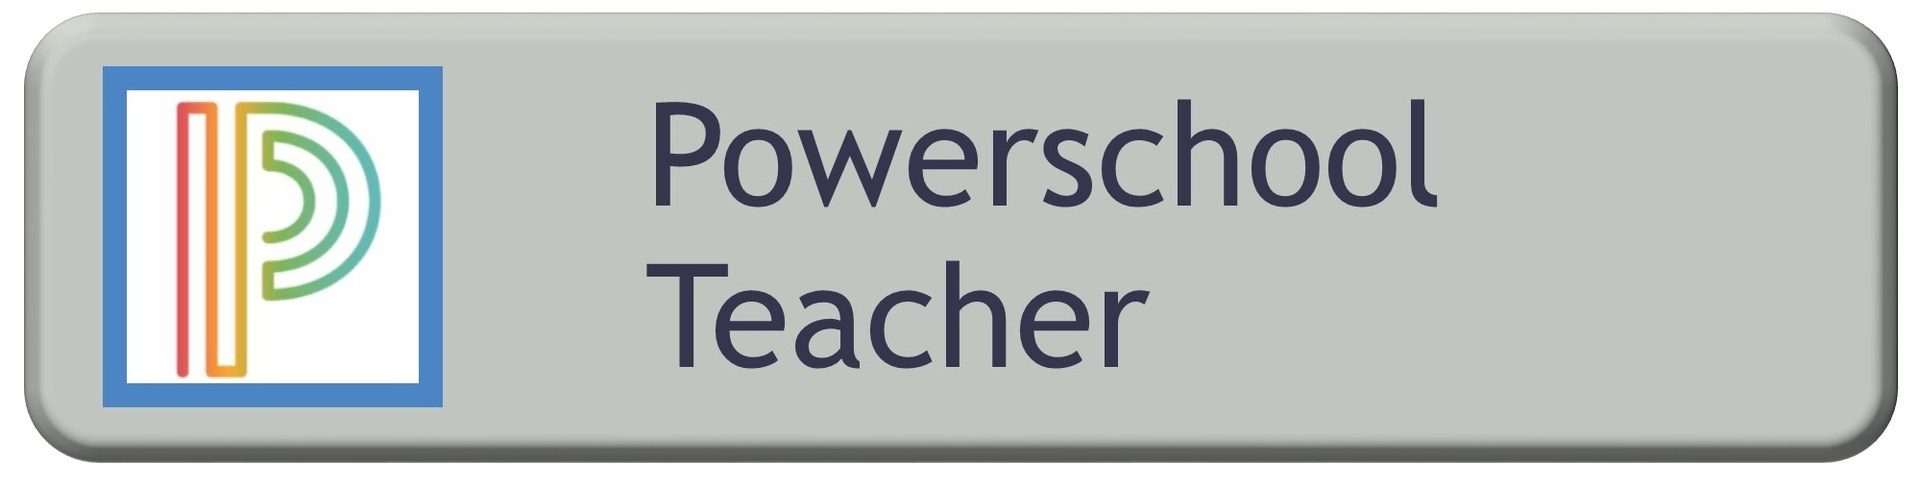 Powerschool Teacher